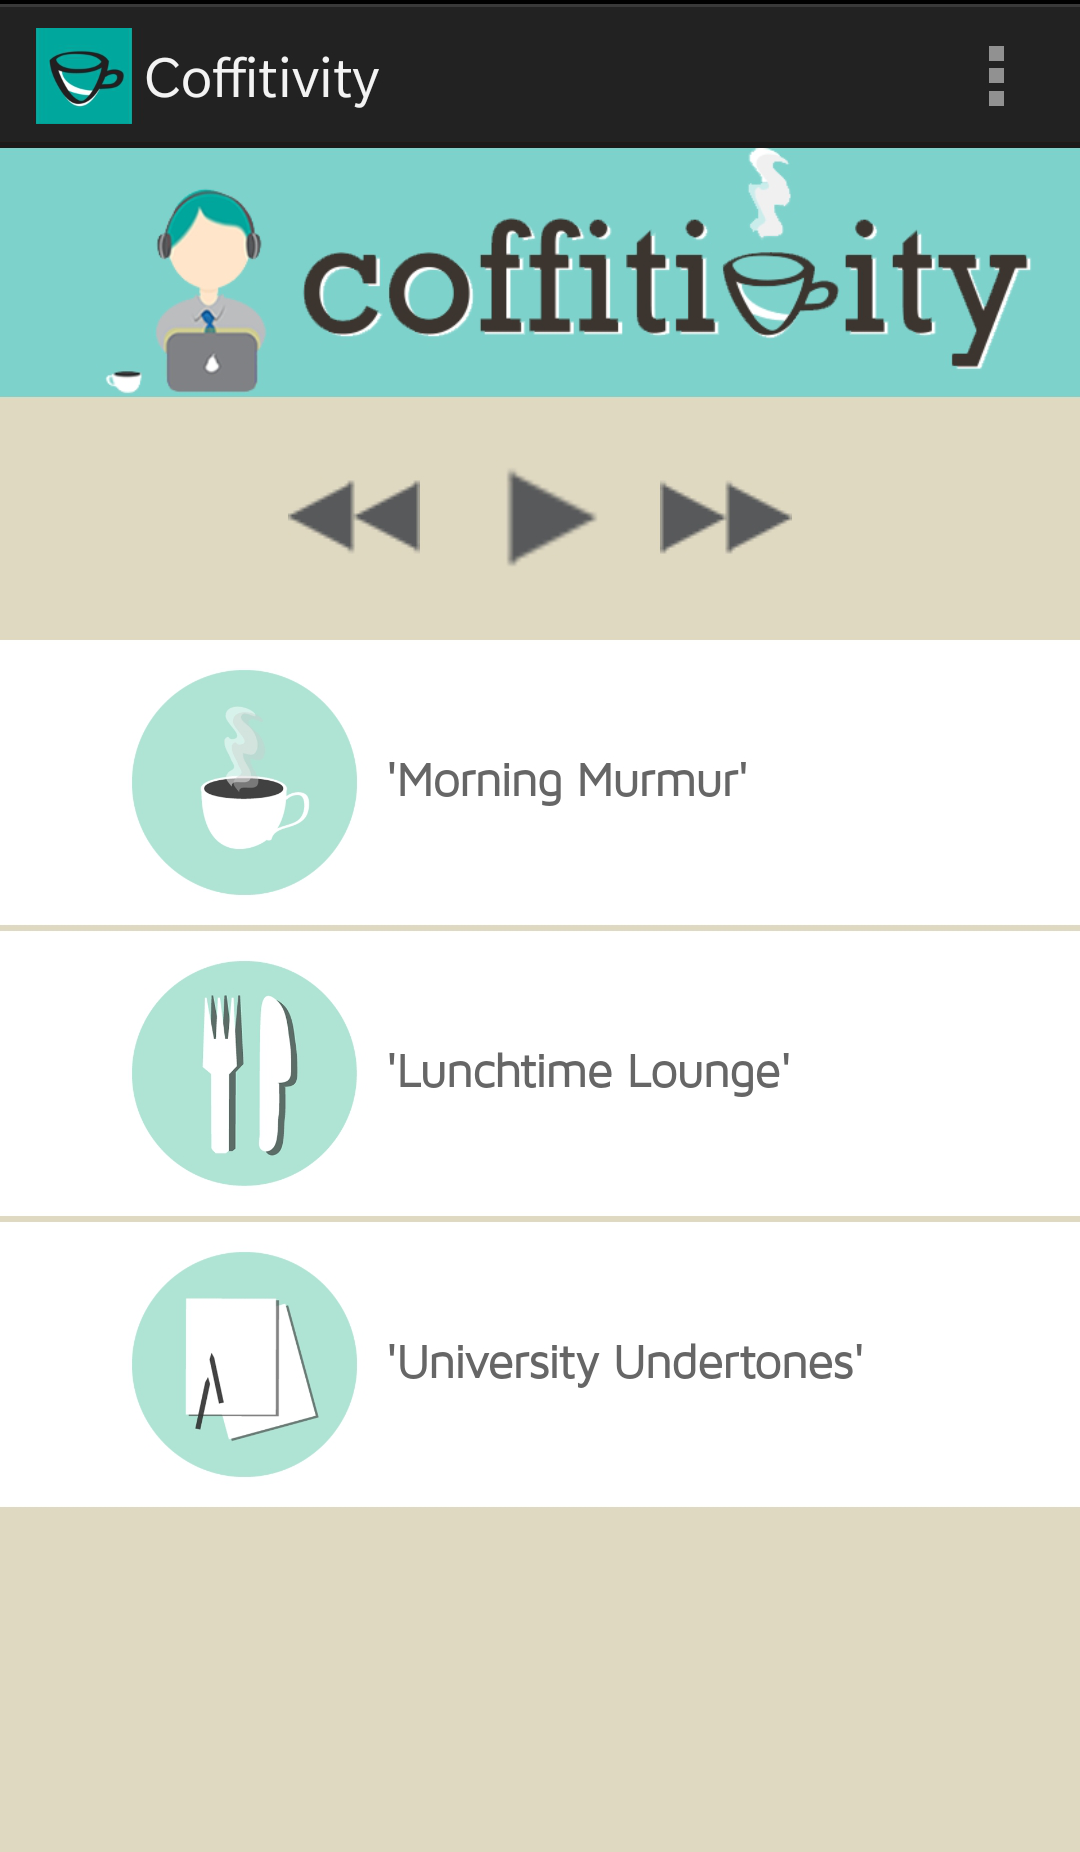 coffitivity - available for Android, iOS, desktop OSX, and onlineCoffitivity is another soundscape service; however, this one specializes in coffee shop ambiances! It claims (with peer reviewed research!) to